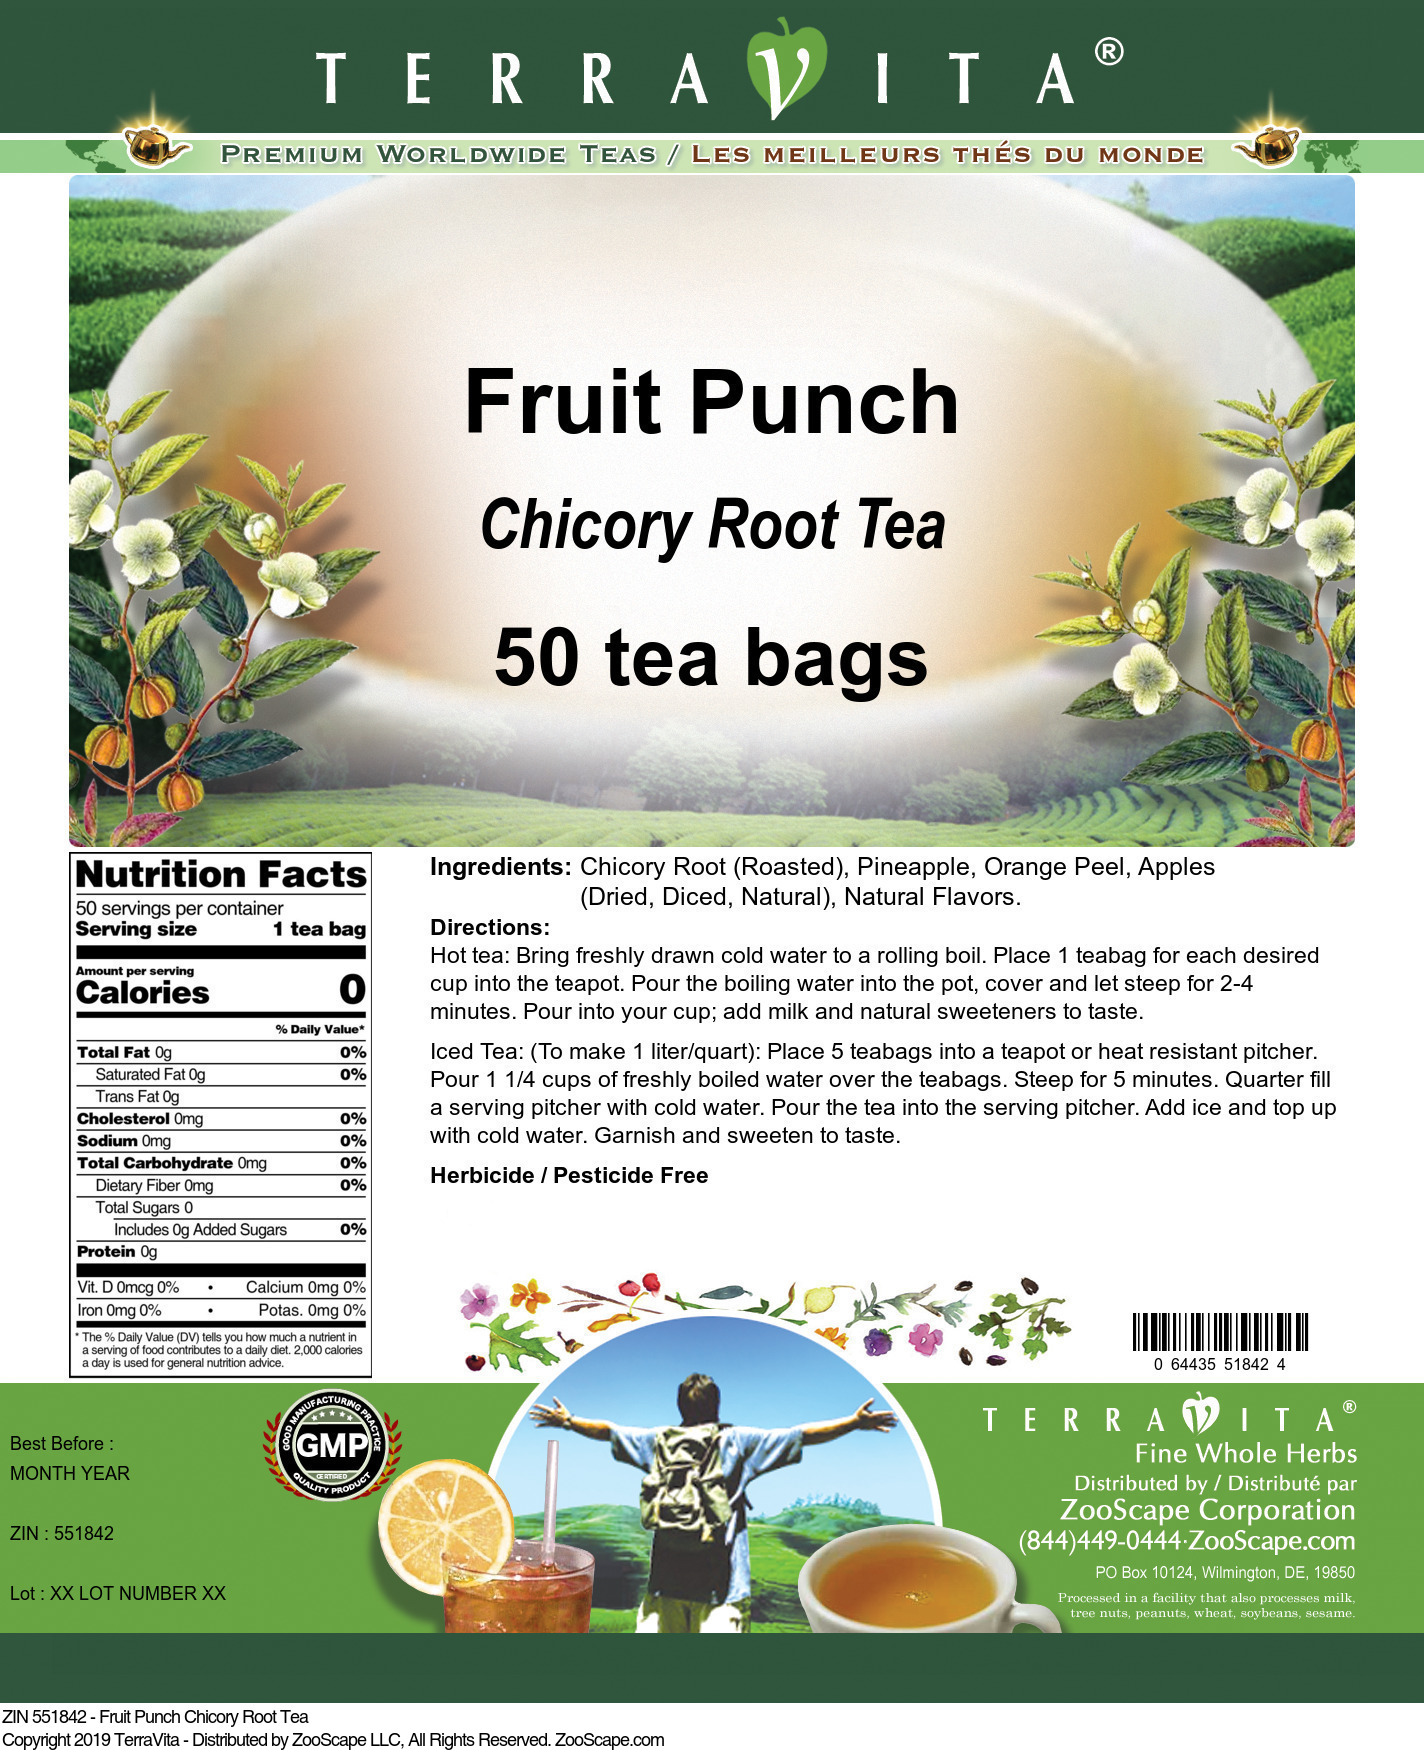 Fruit Punch Chicory Root